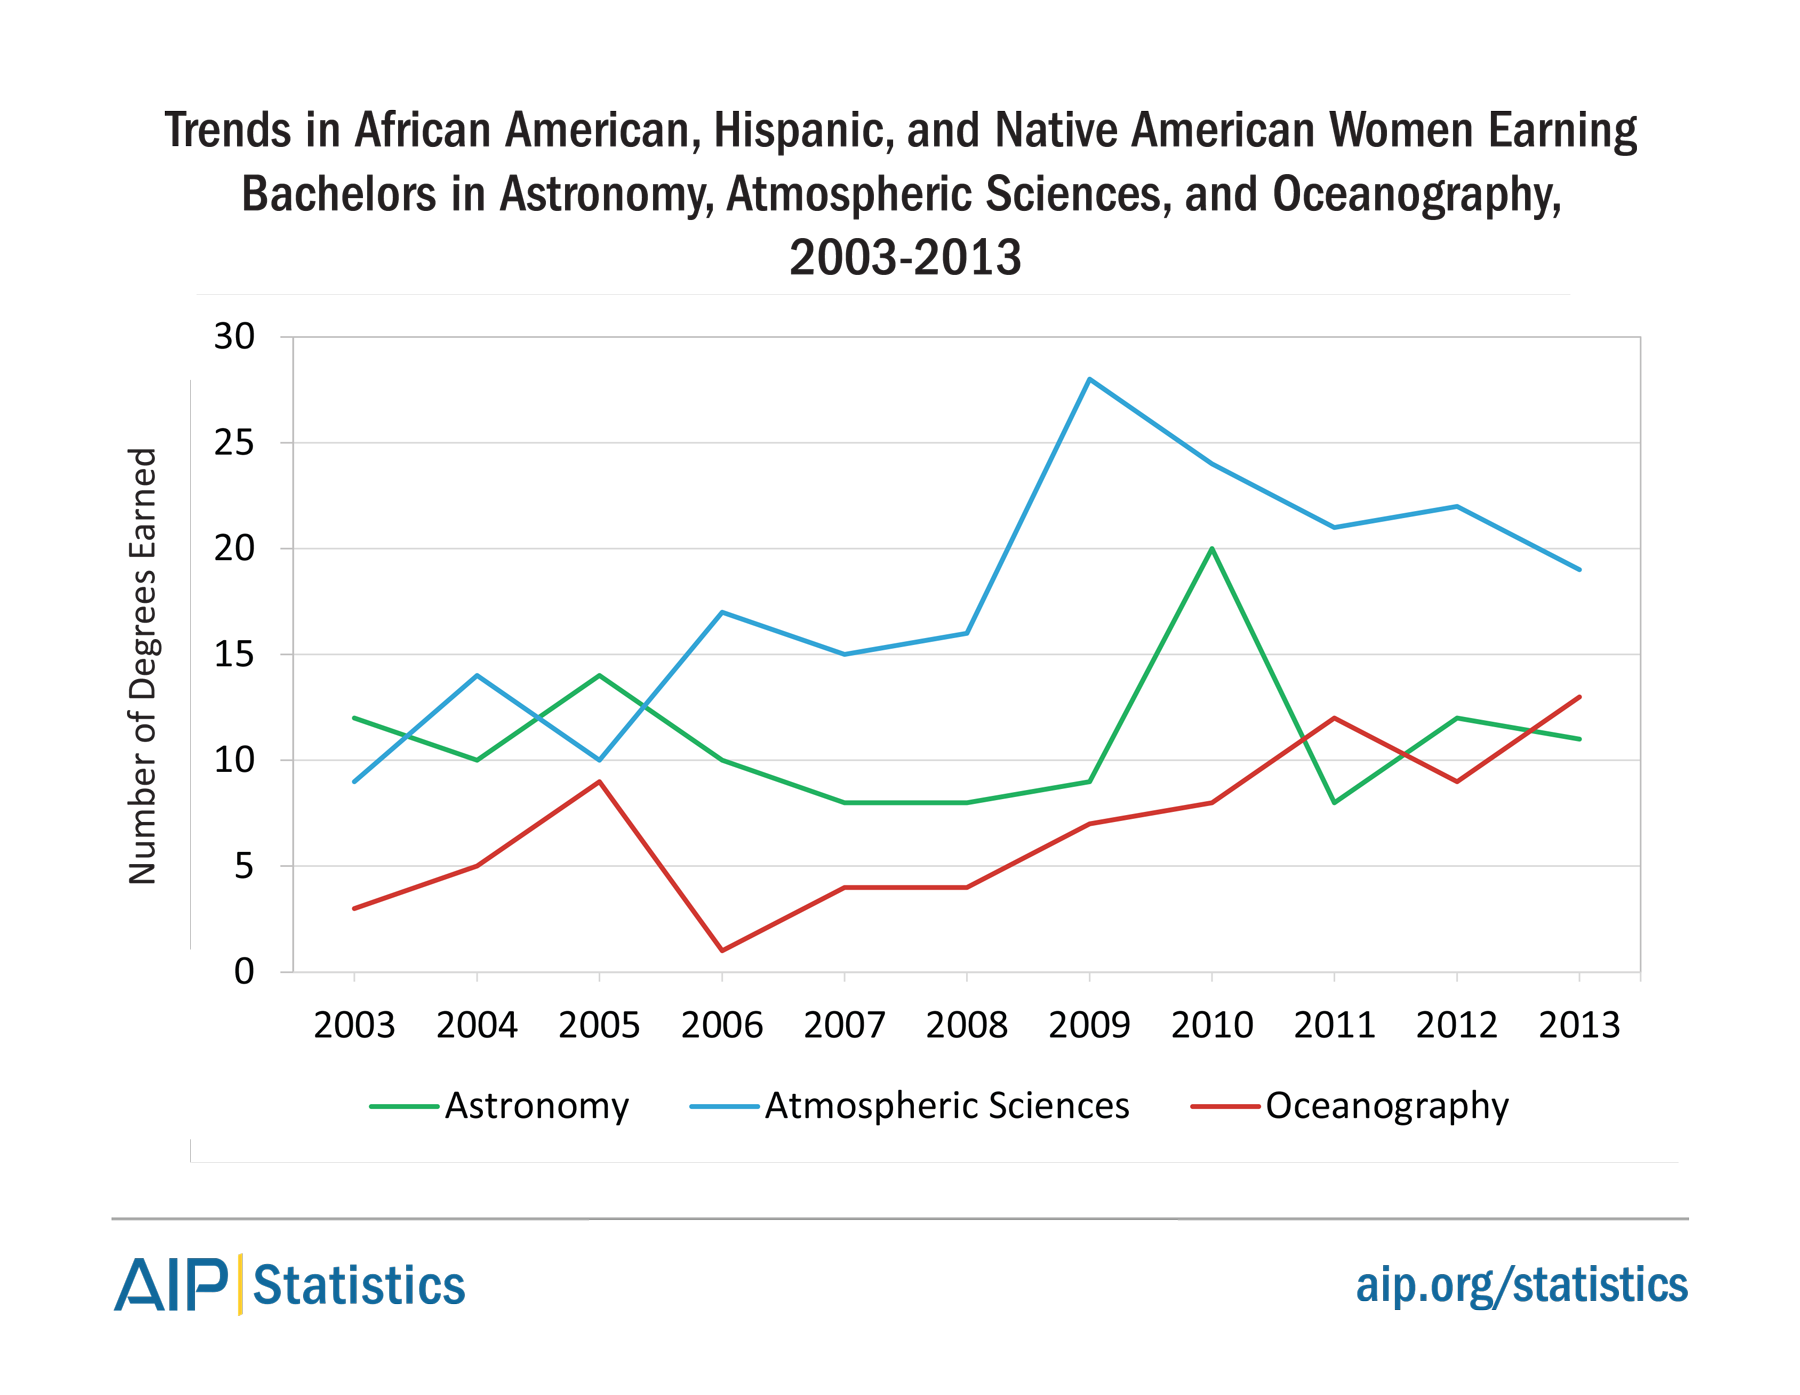 Trends in African American, Hispanic, and Native American Women Earning Bachelors in Astronomy, Atmospheric Sciences, and Oceanography, 2003-2013